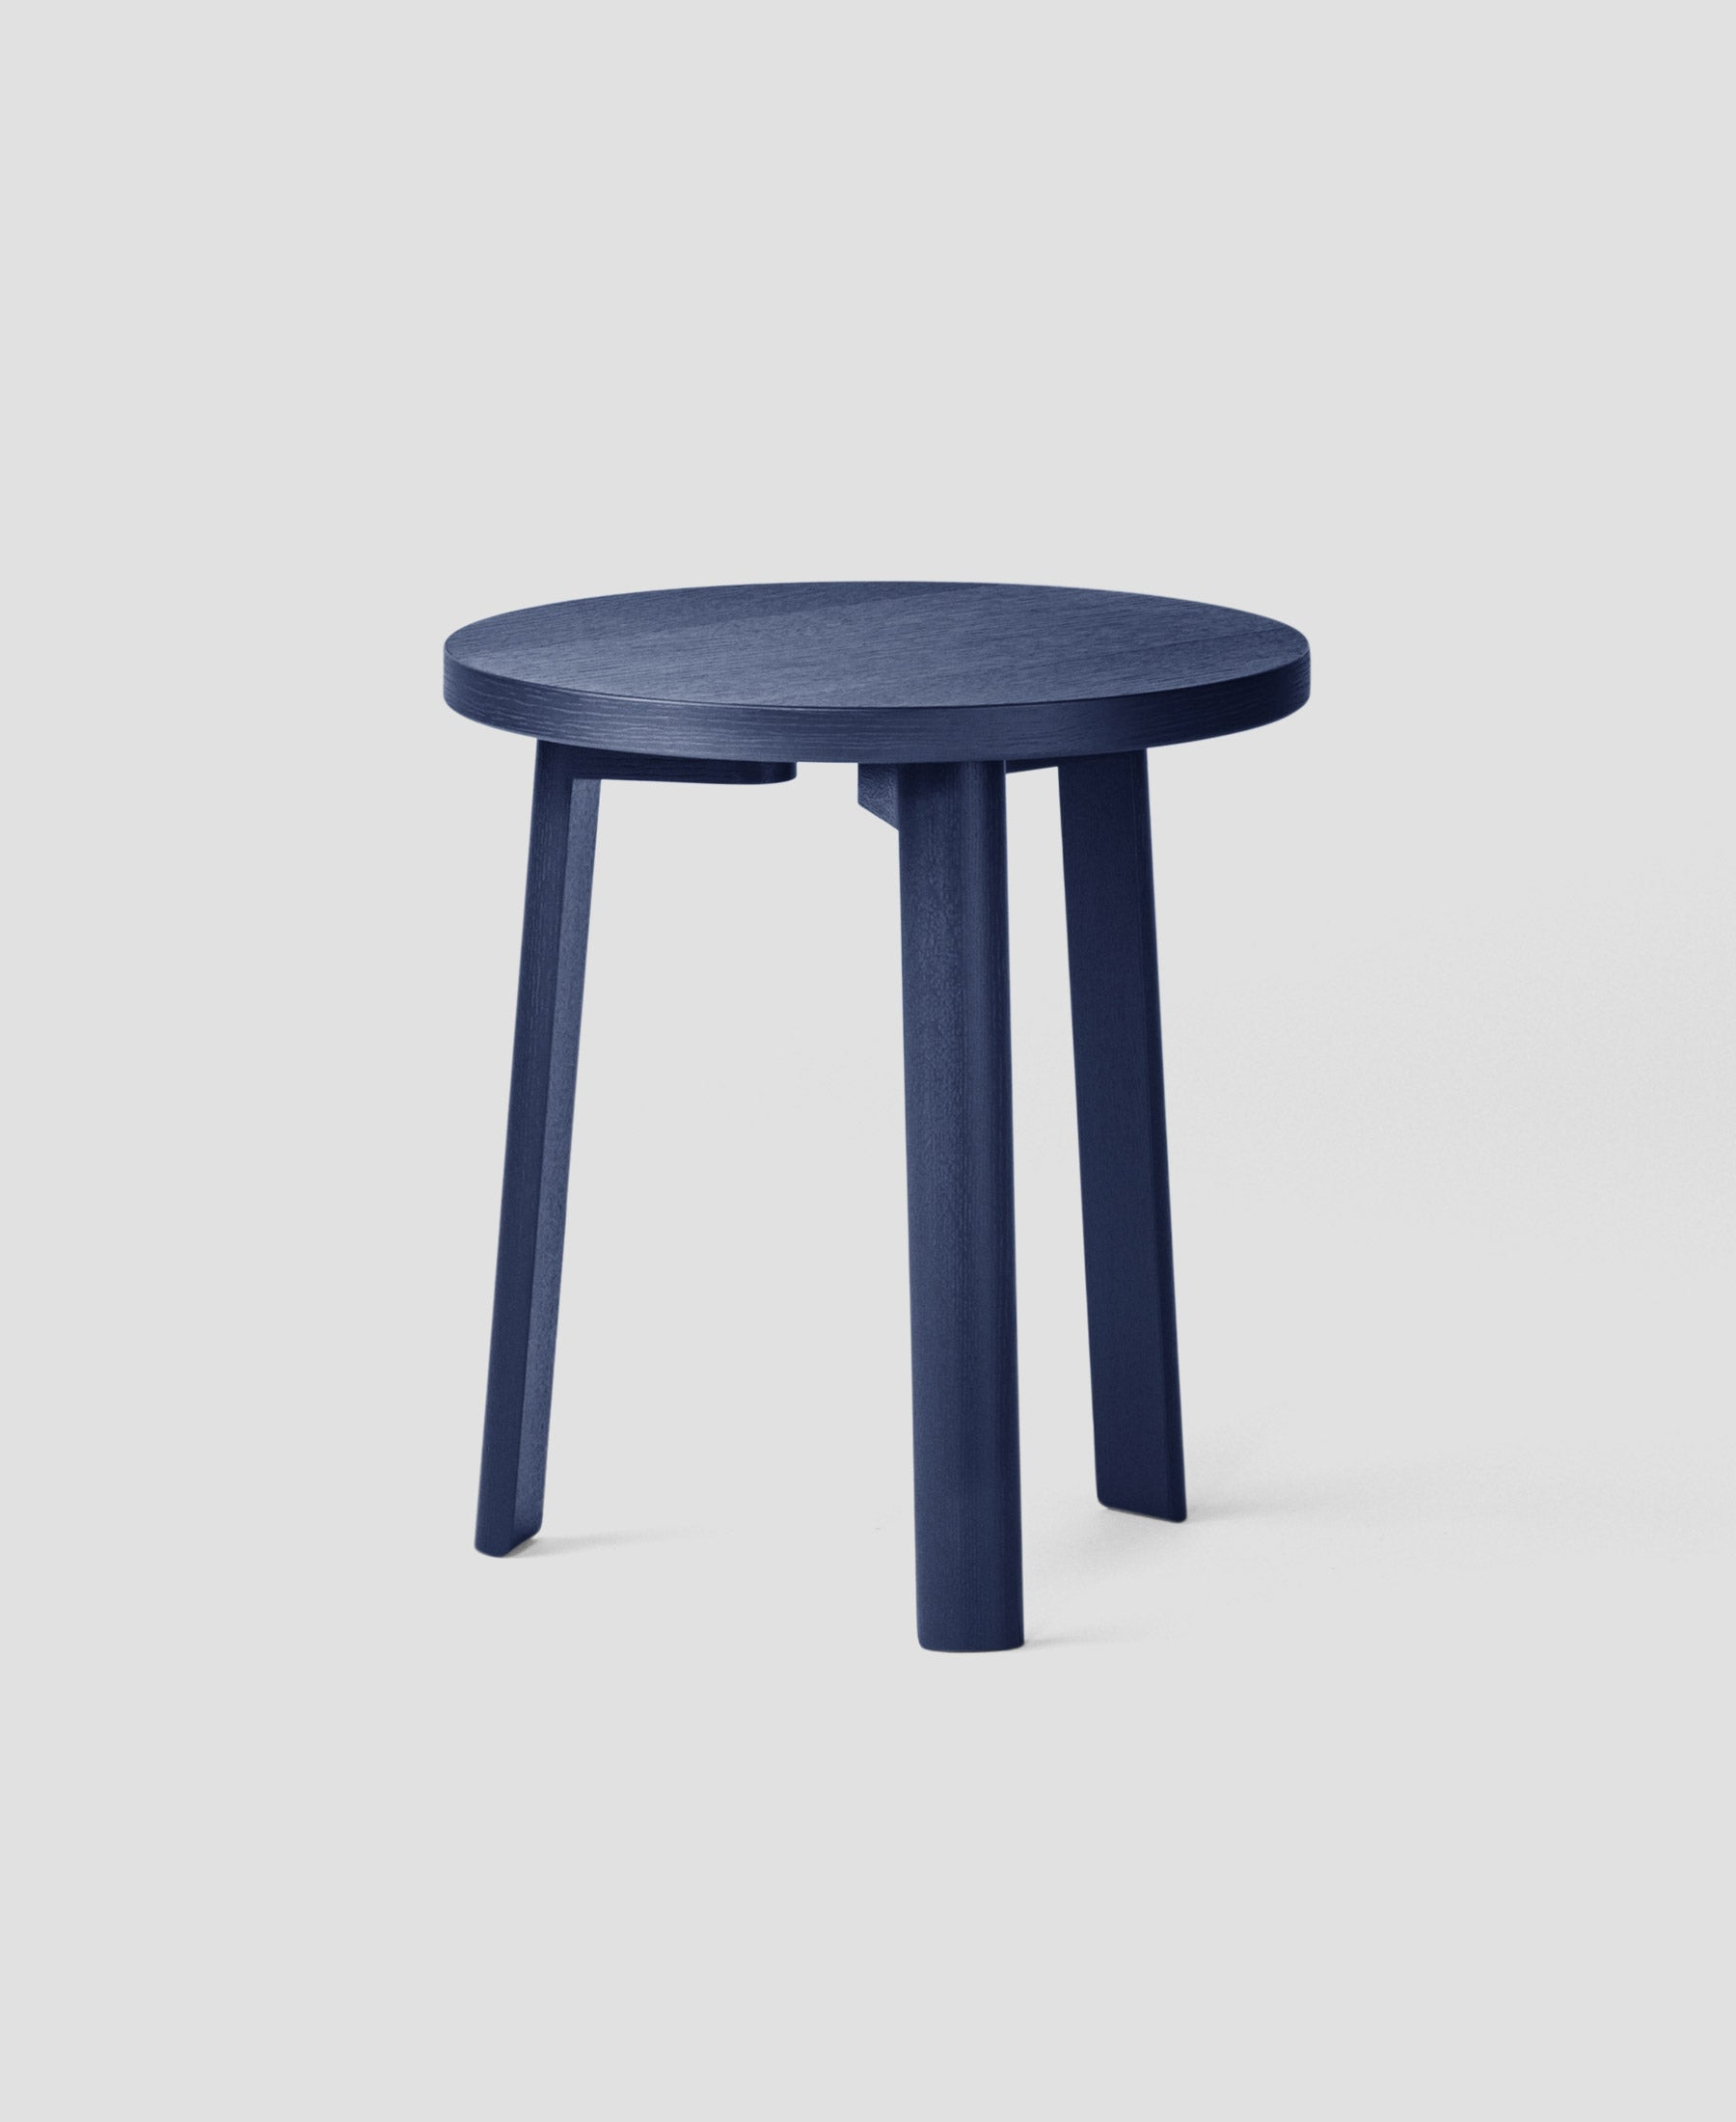 Ease Lounge Table Ø40, H43 Oak Veneer, Dark Blue fra MILLION